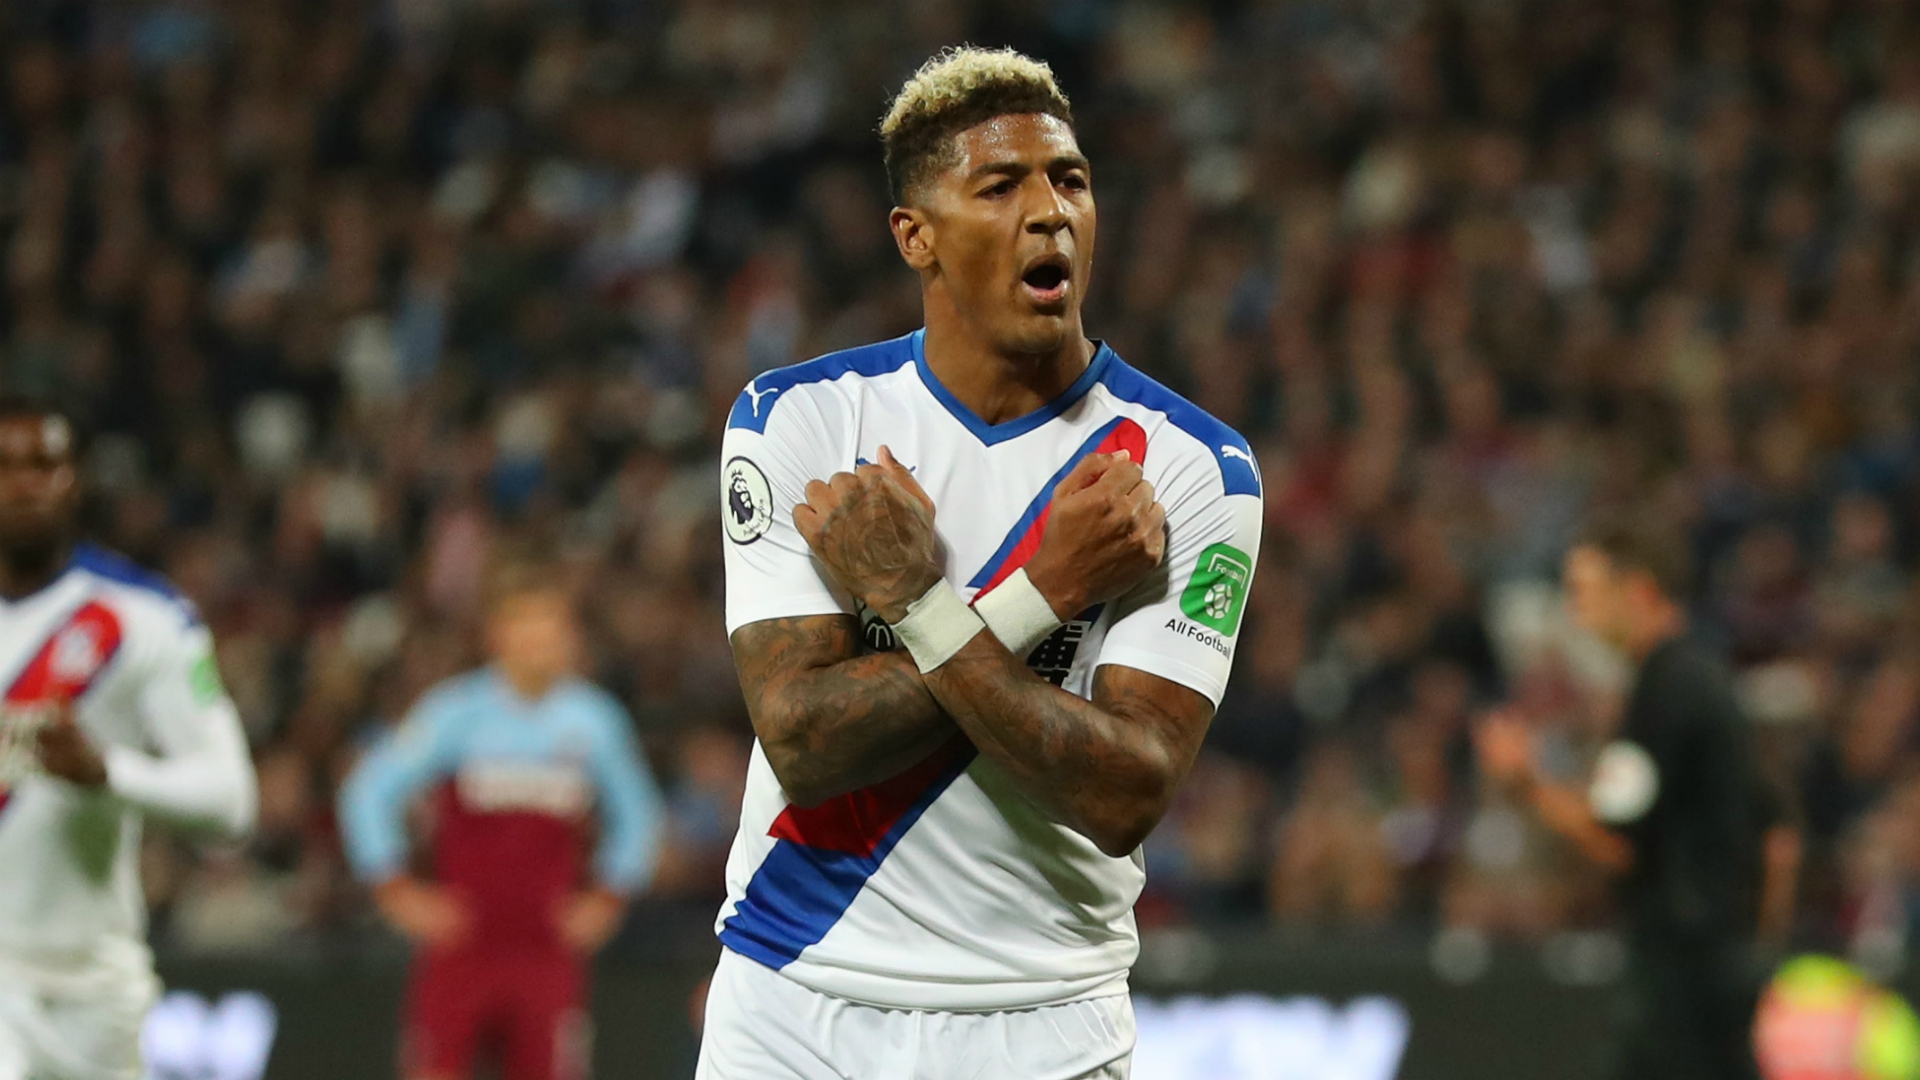 'Van Aanholt is good enough for Arsenal' - Hodgson speaks out on rumours linking Crystal Palace star with Emirates switch